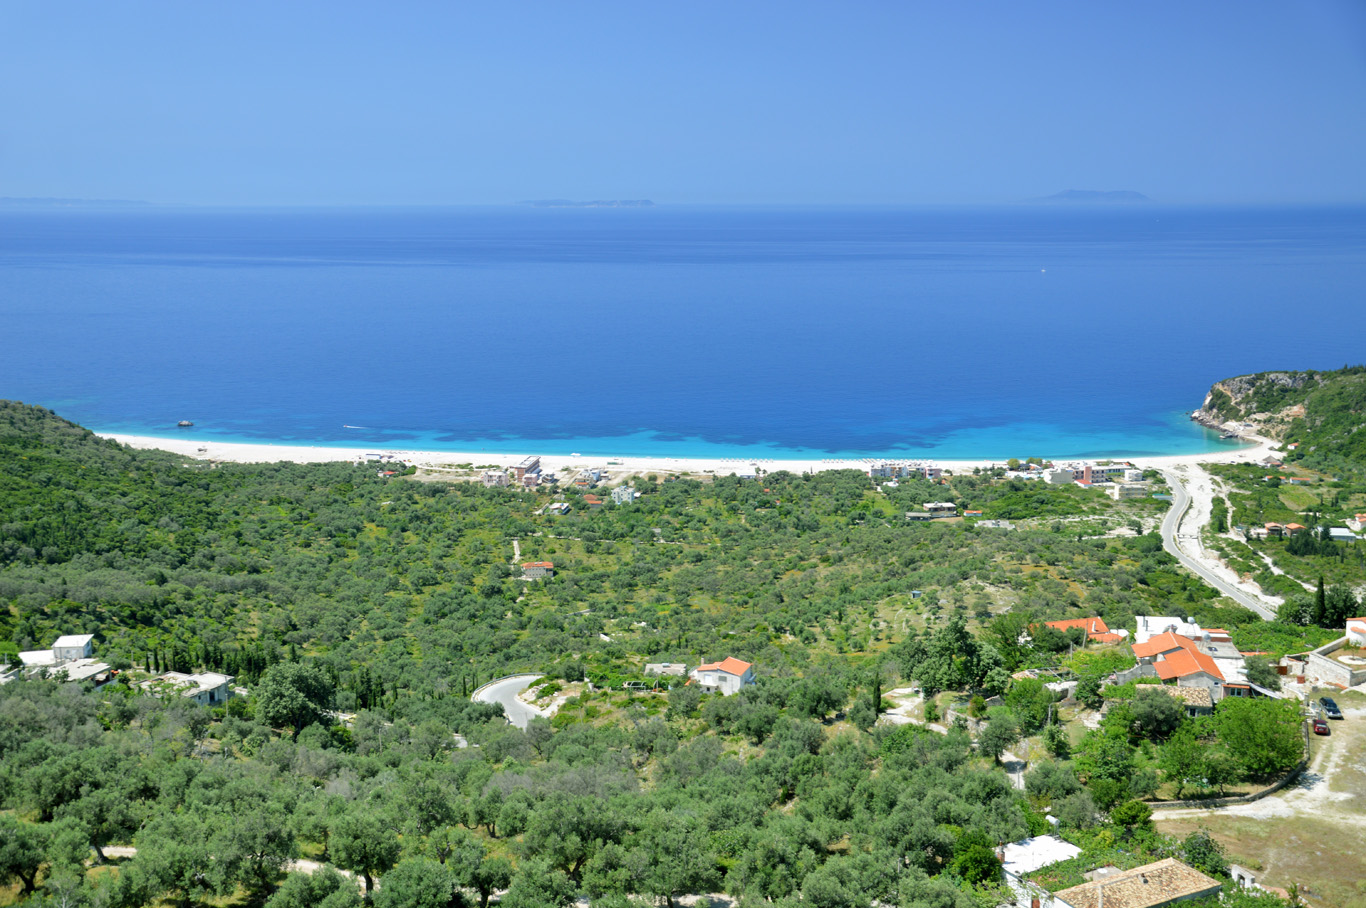 Livadh beach - view from Himare old town